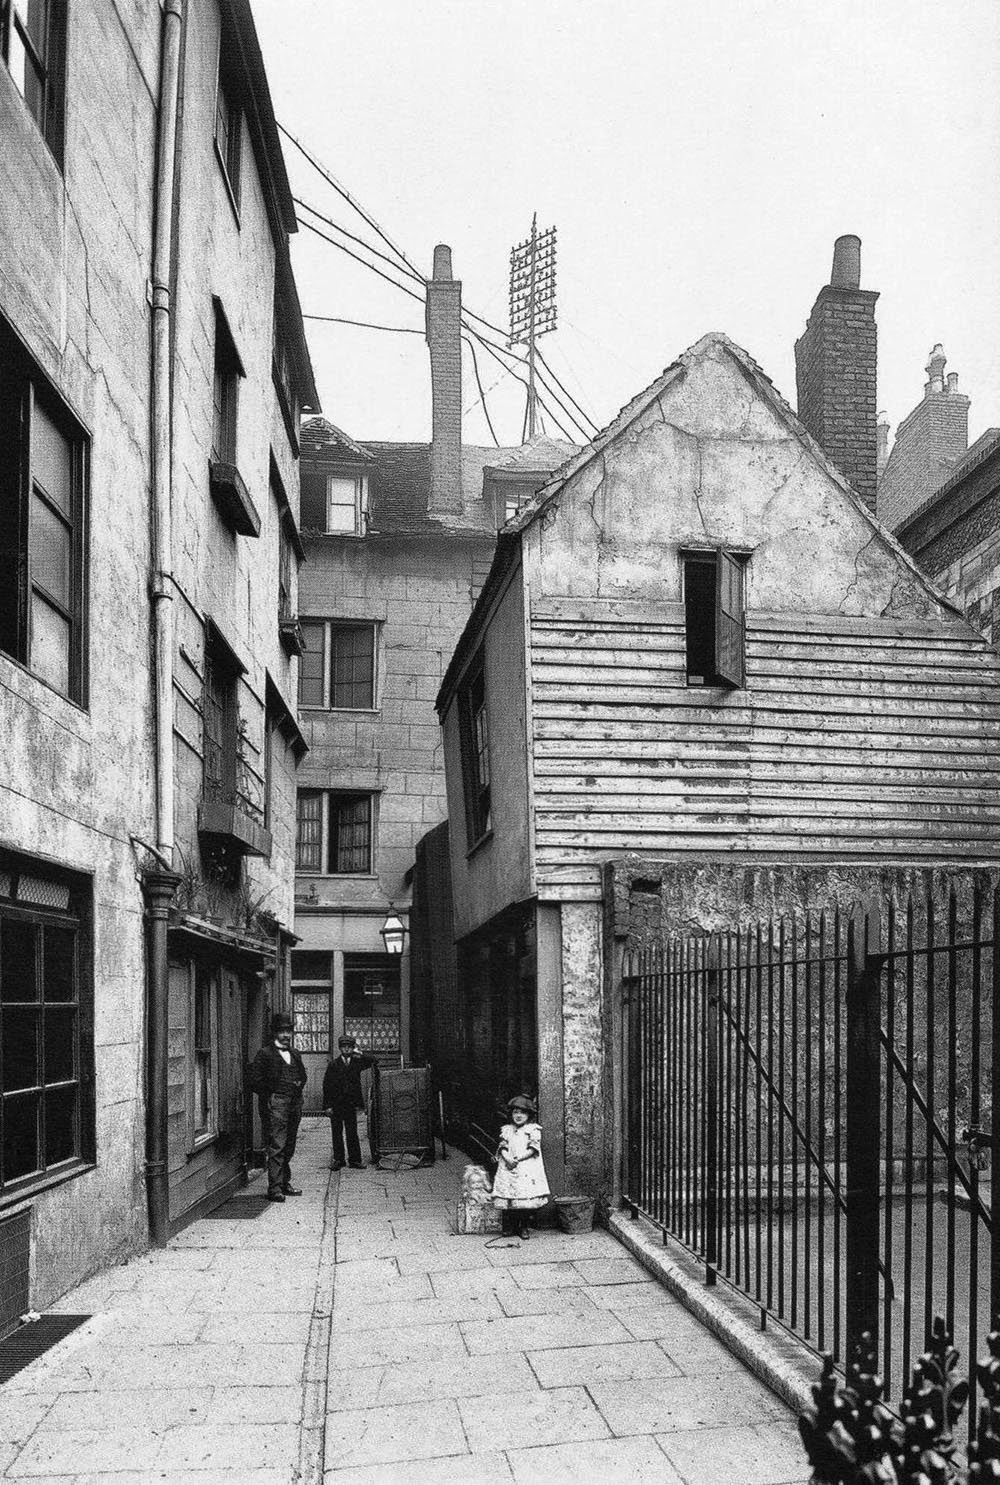 Rarely Seen Vintage Photographs Of A Lost London From